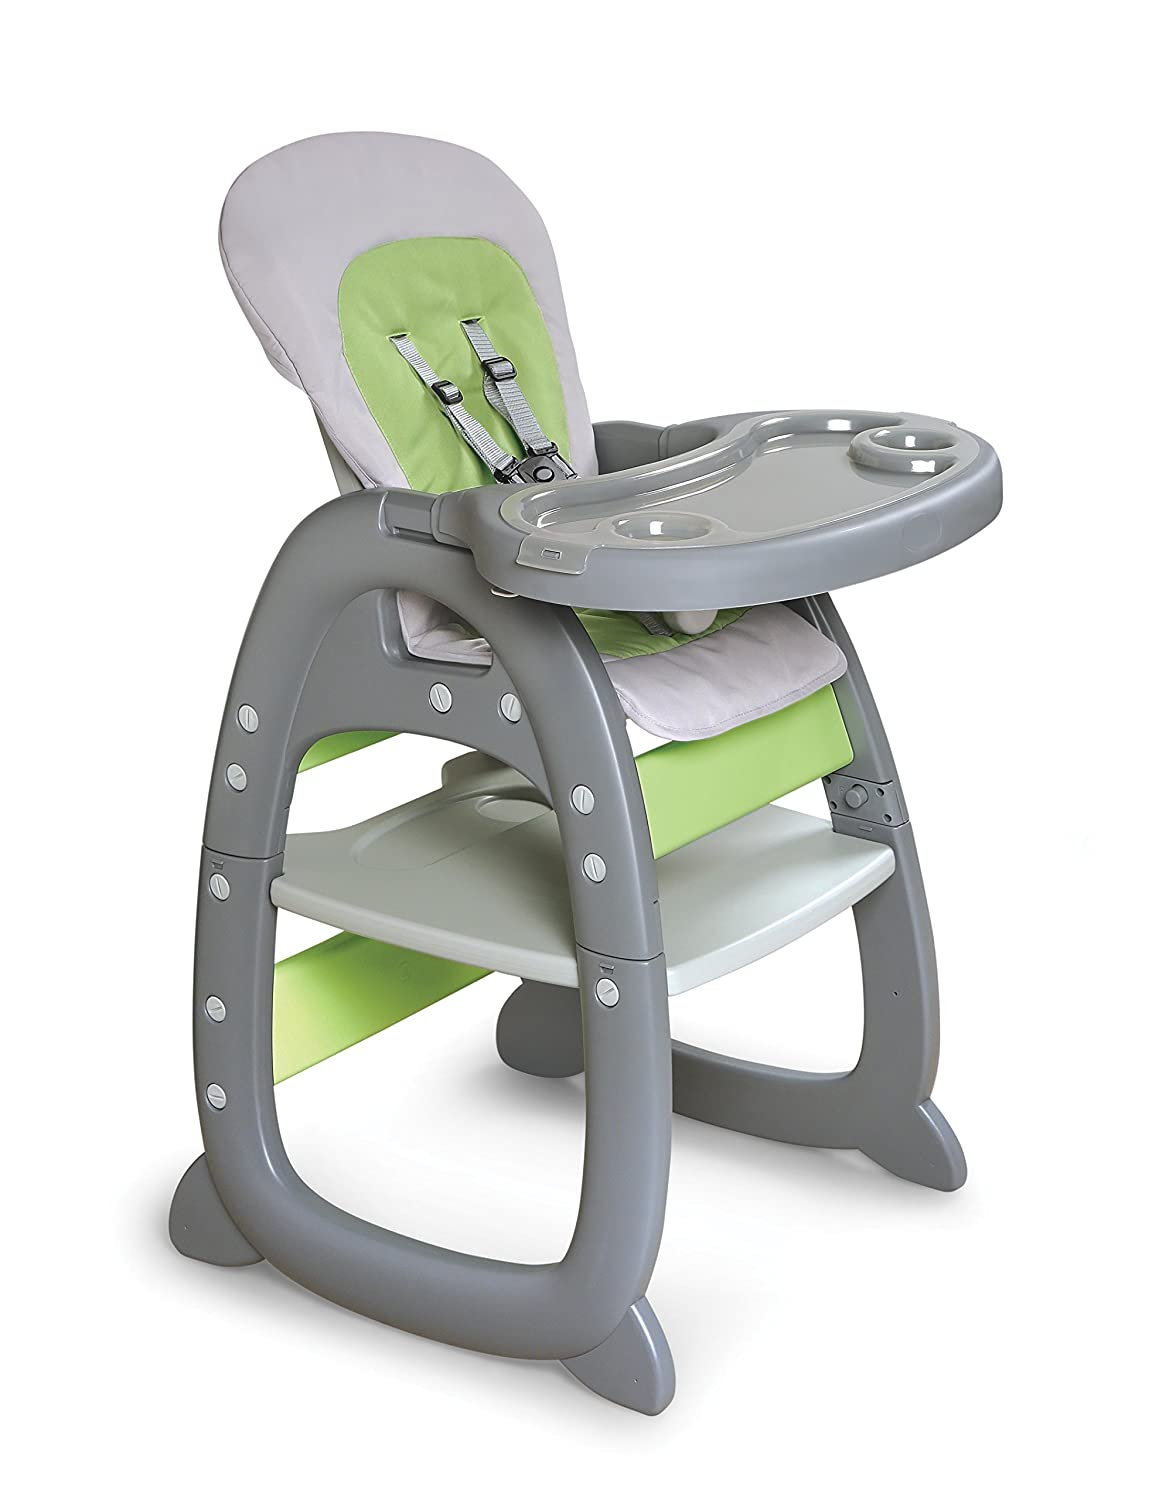 2017 05 graco blossom high chair colors - Amazoncom Badger Basket Envee Ii Baby High Chair With Playtable Conversion Graygreen Baby